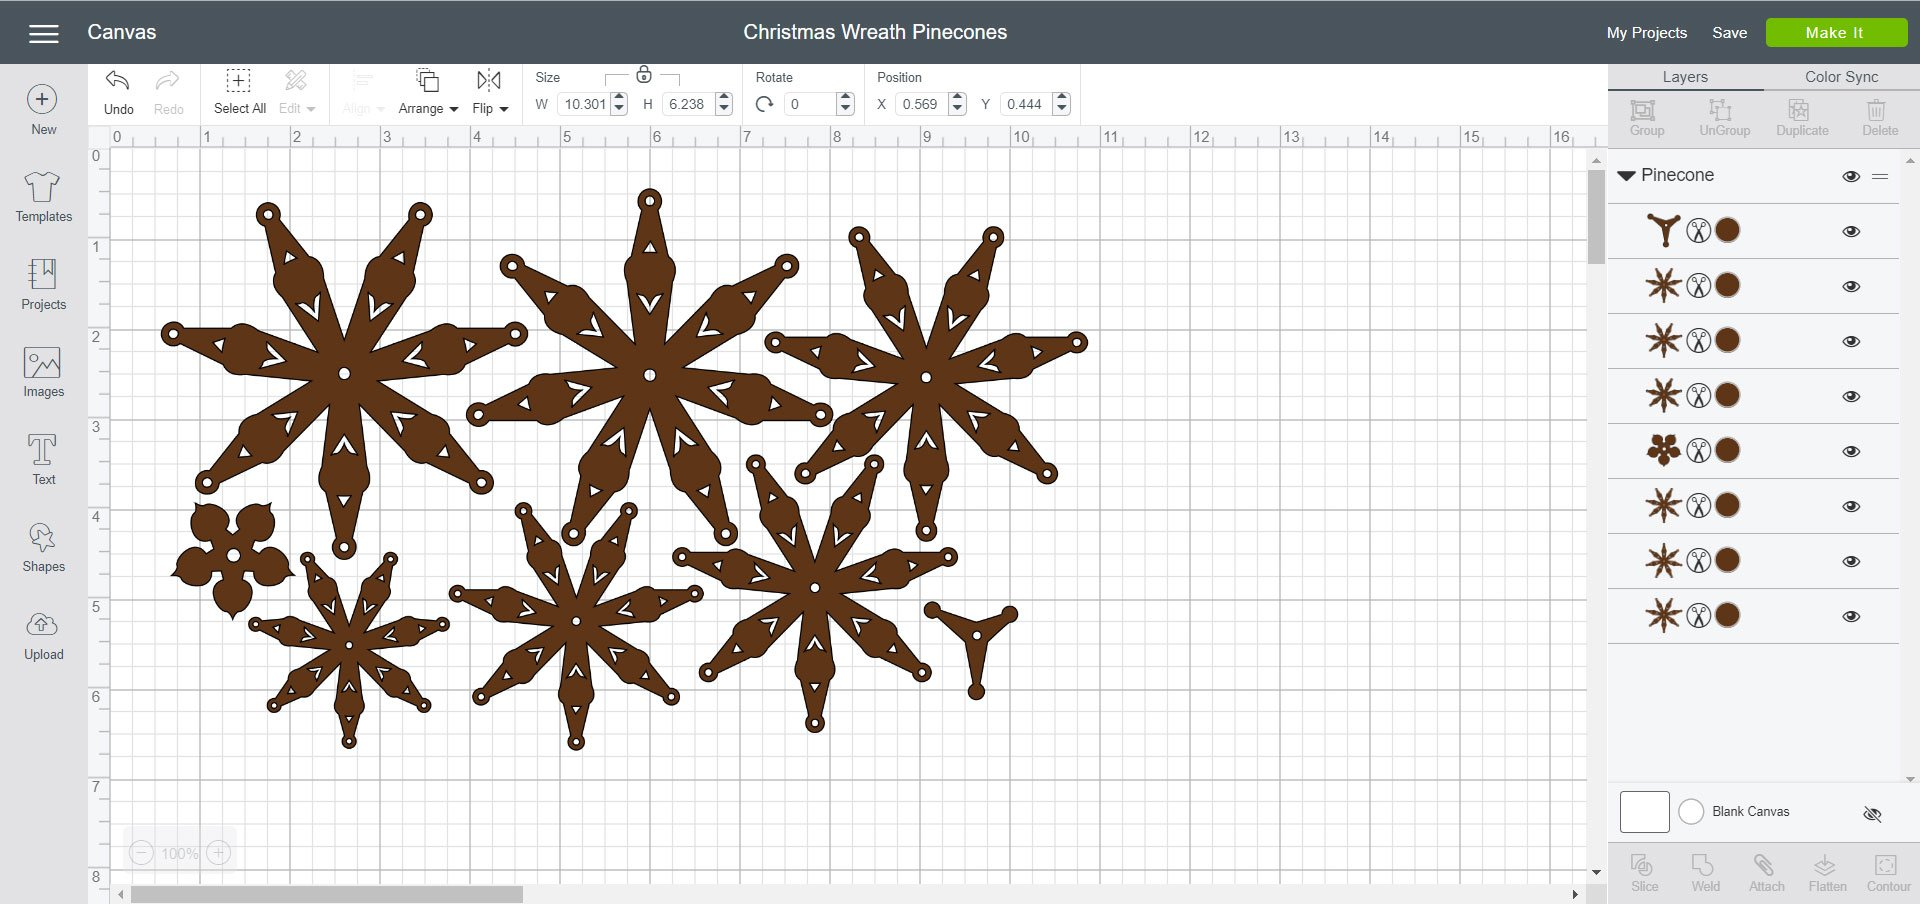 Cricut Design Space File - Christmas Wreath Pinecones